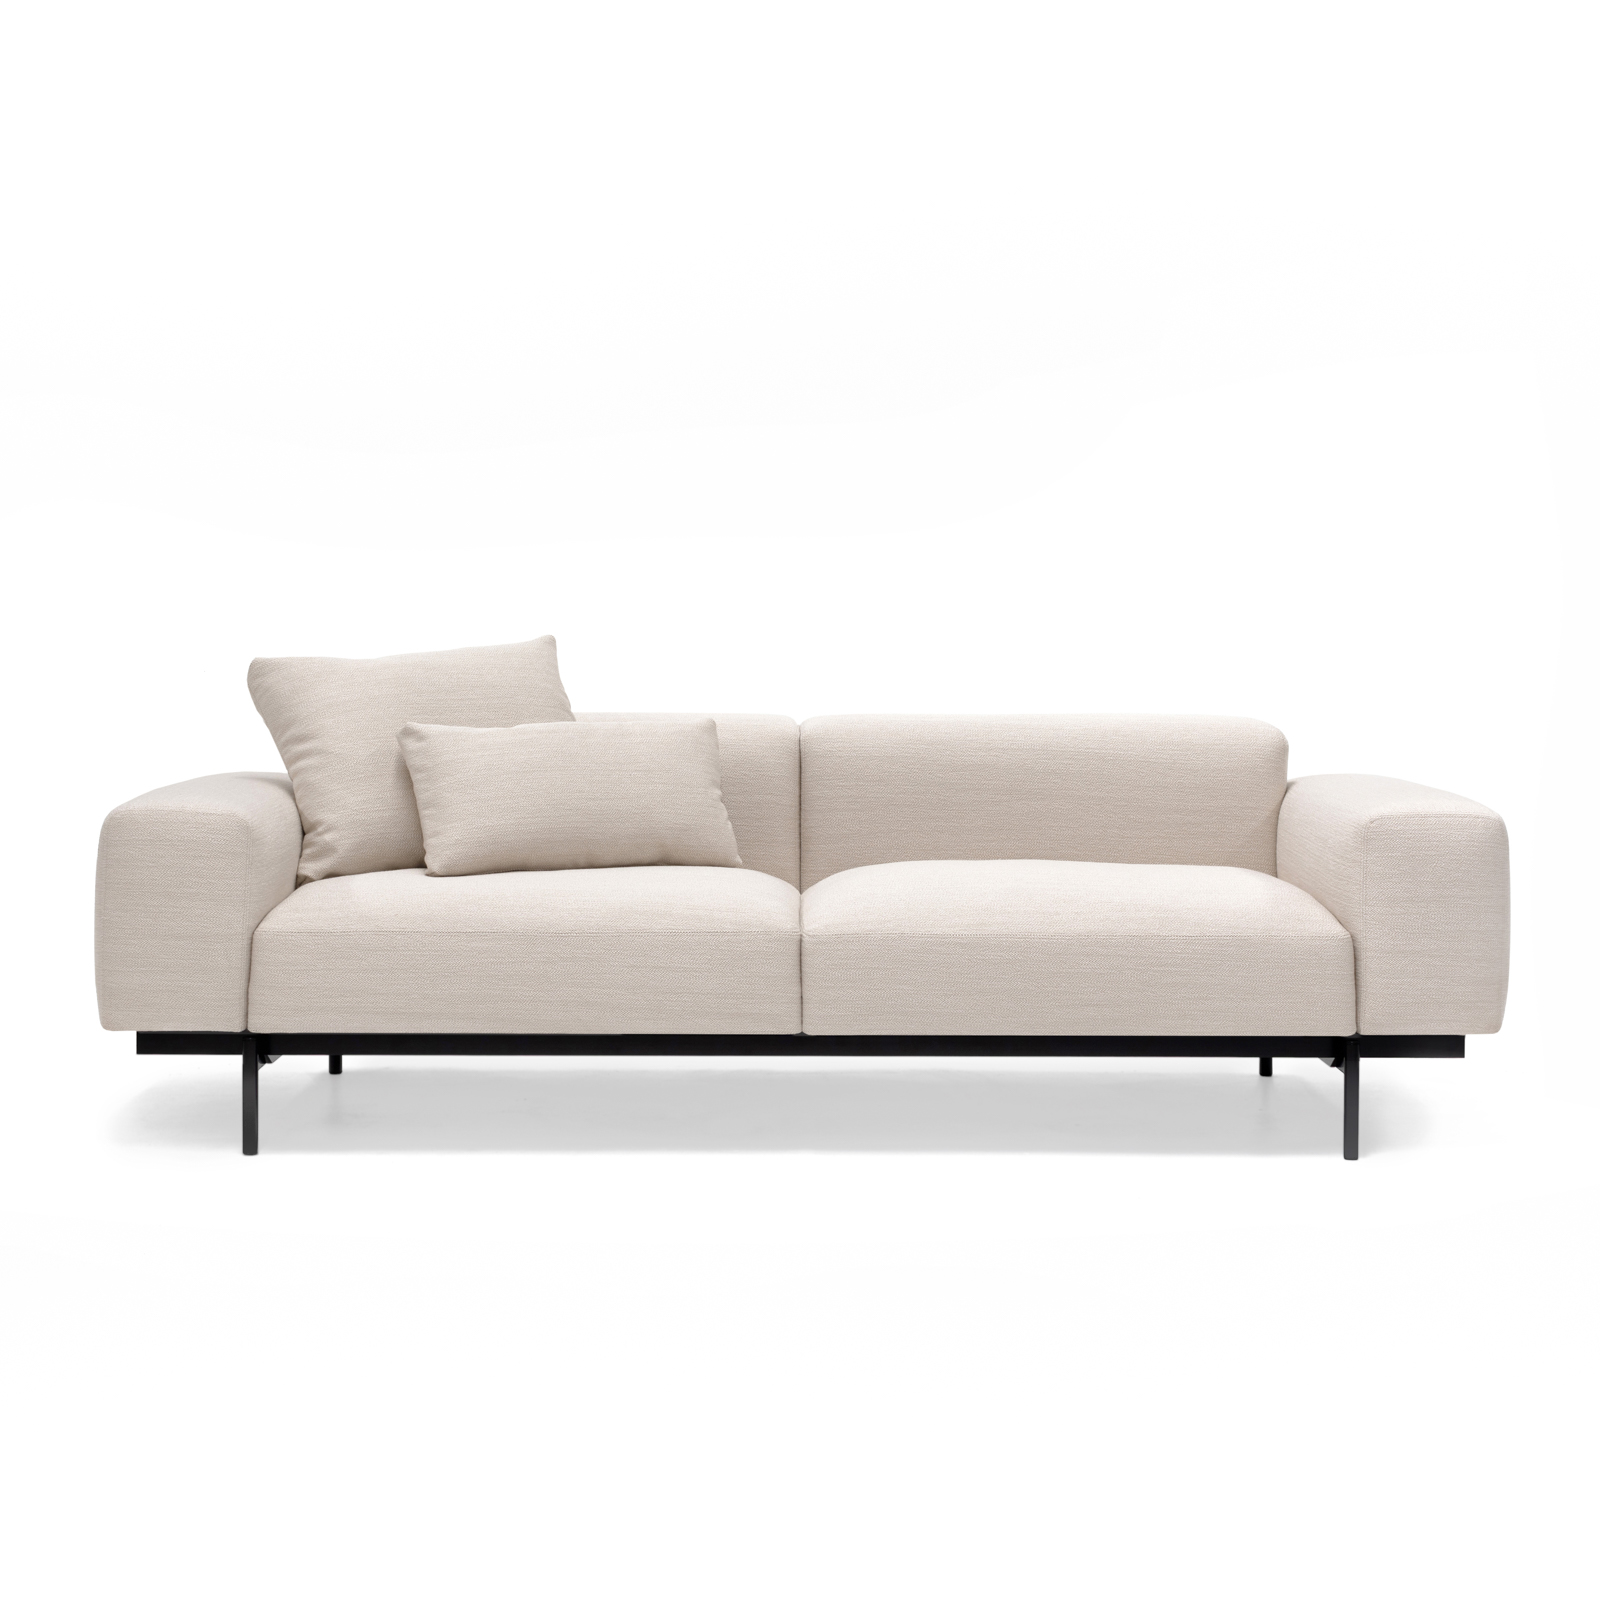 Permanent Future Perry Sofa 2.5 Seater Pure Pumice Cushion Large Small Pf Sf Pr 2.5 Pp Front View